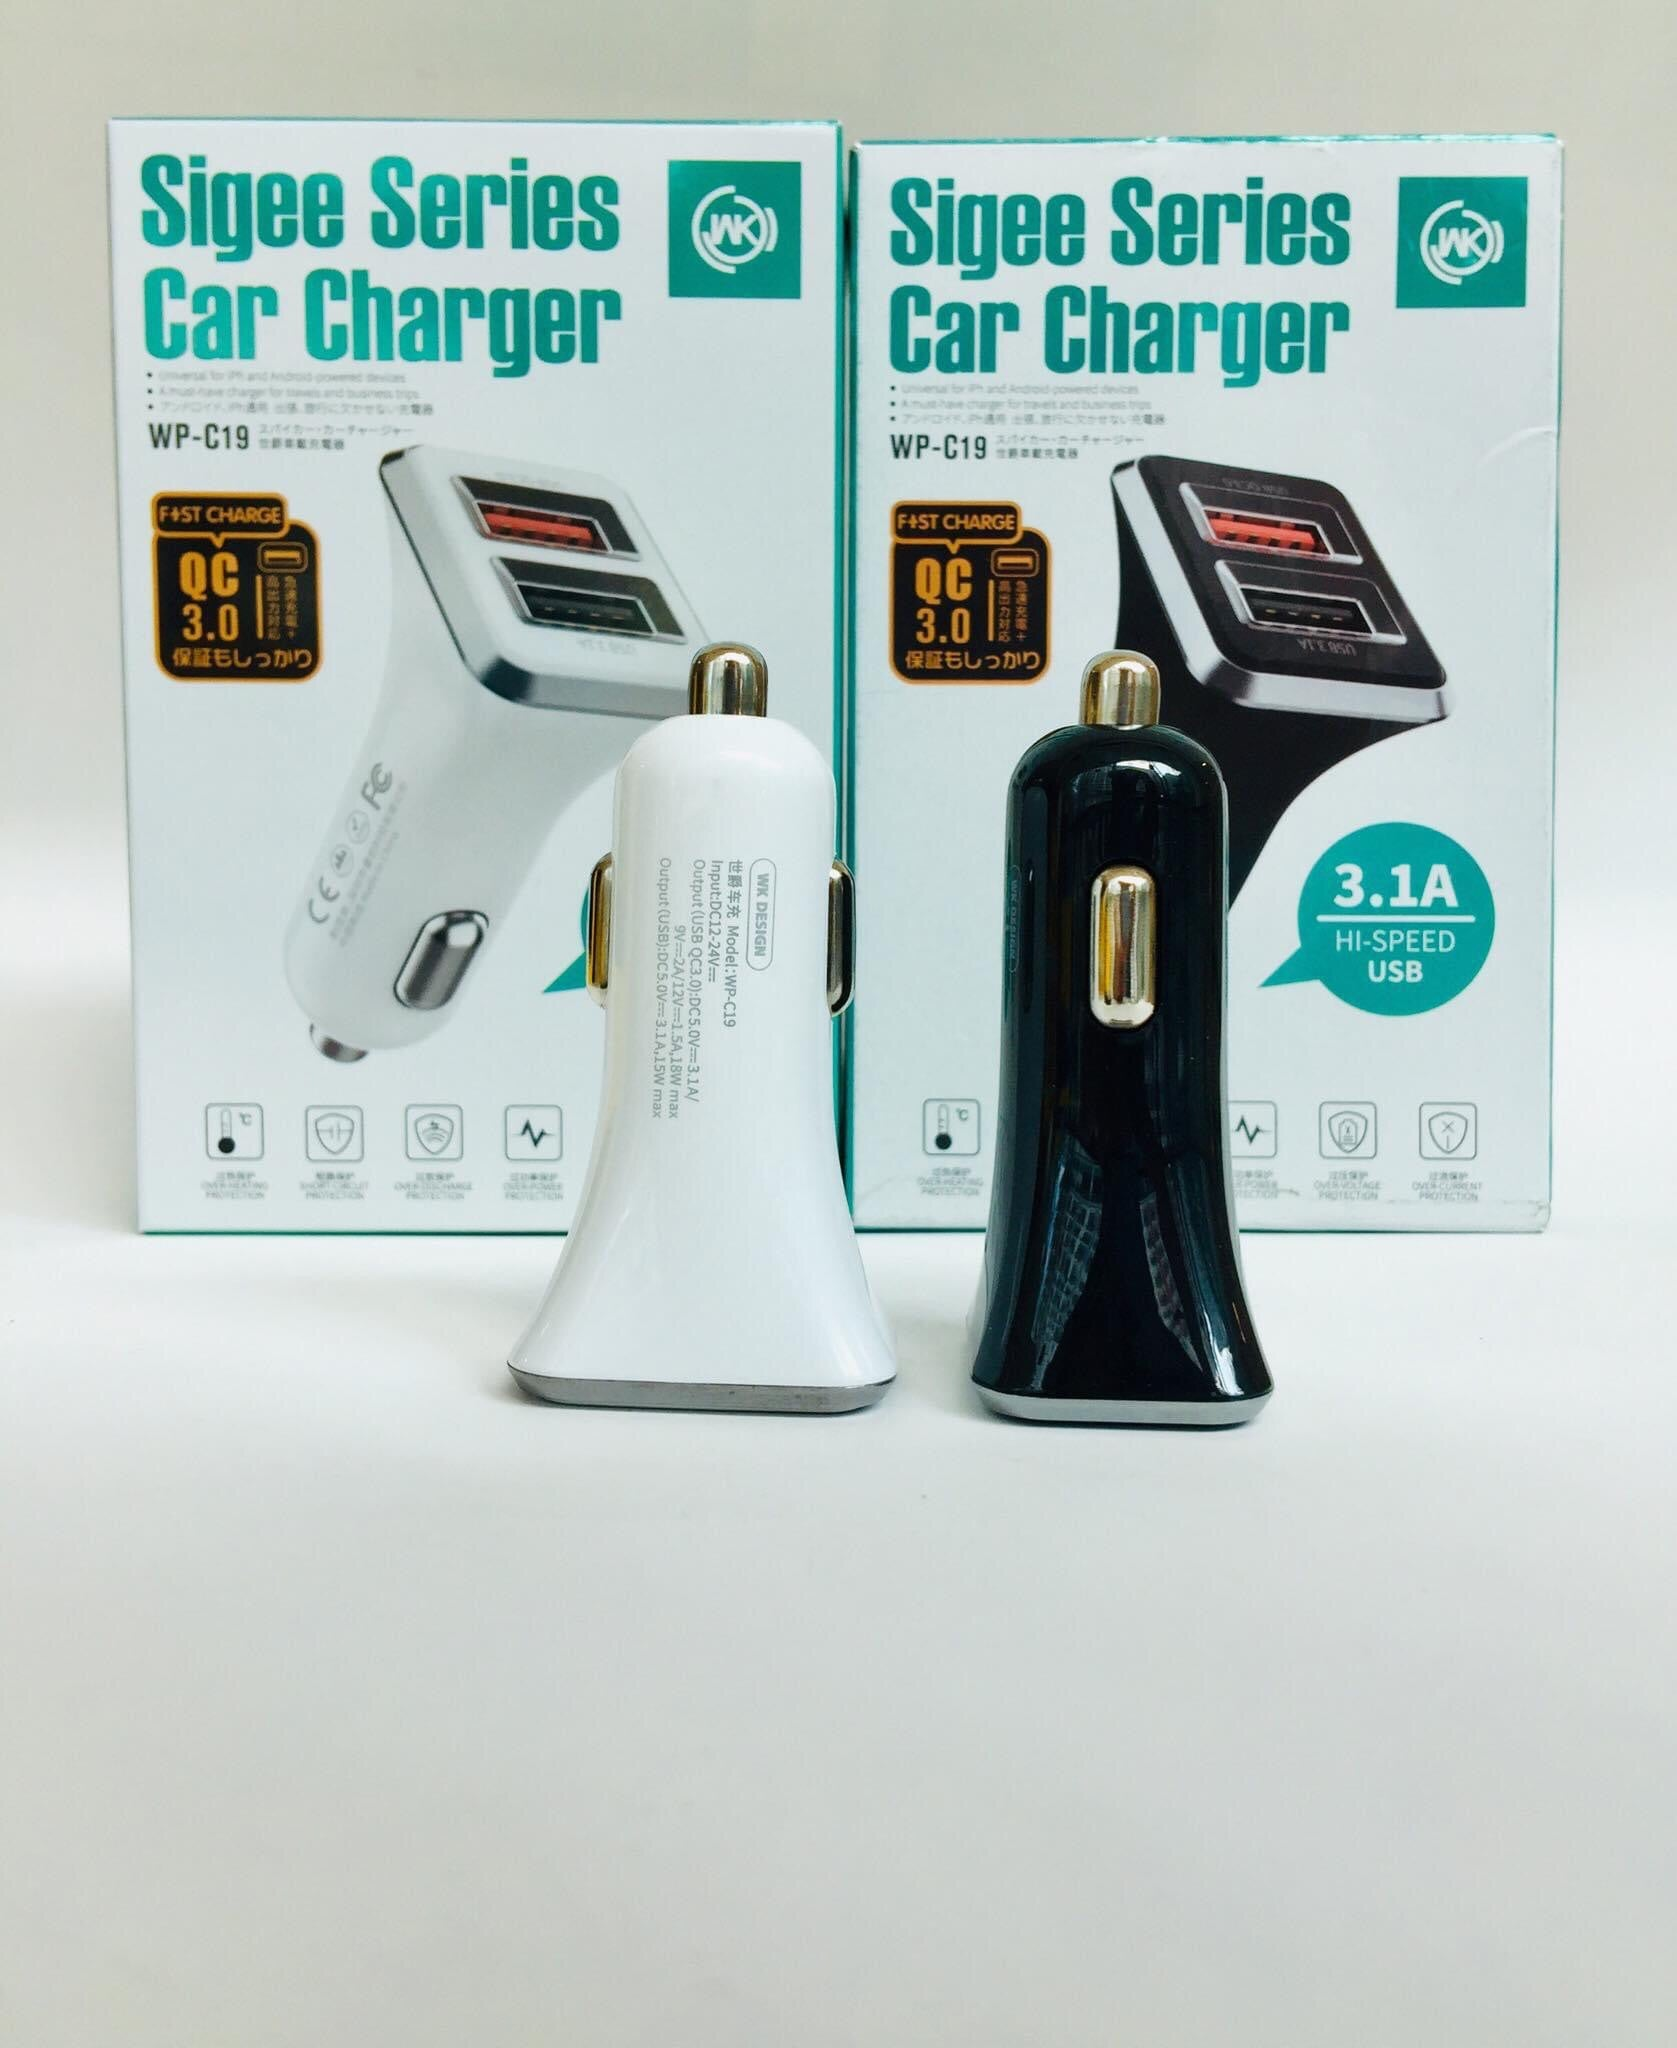 WP-C19 Sigee Series Car Charger QC3.0 + USB3.1A